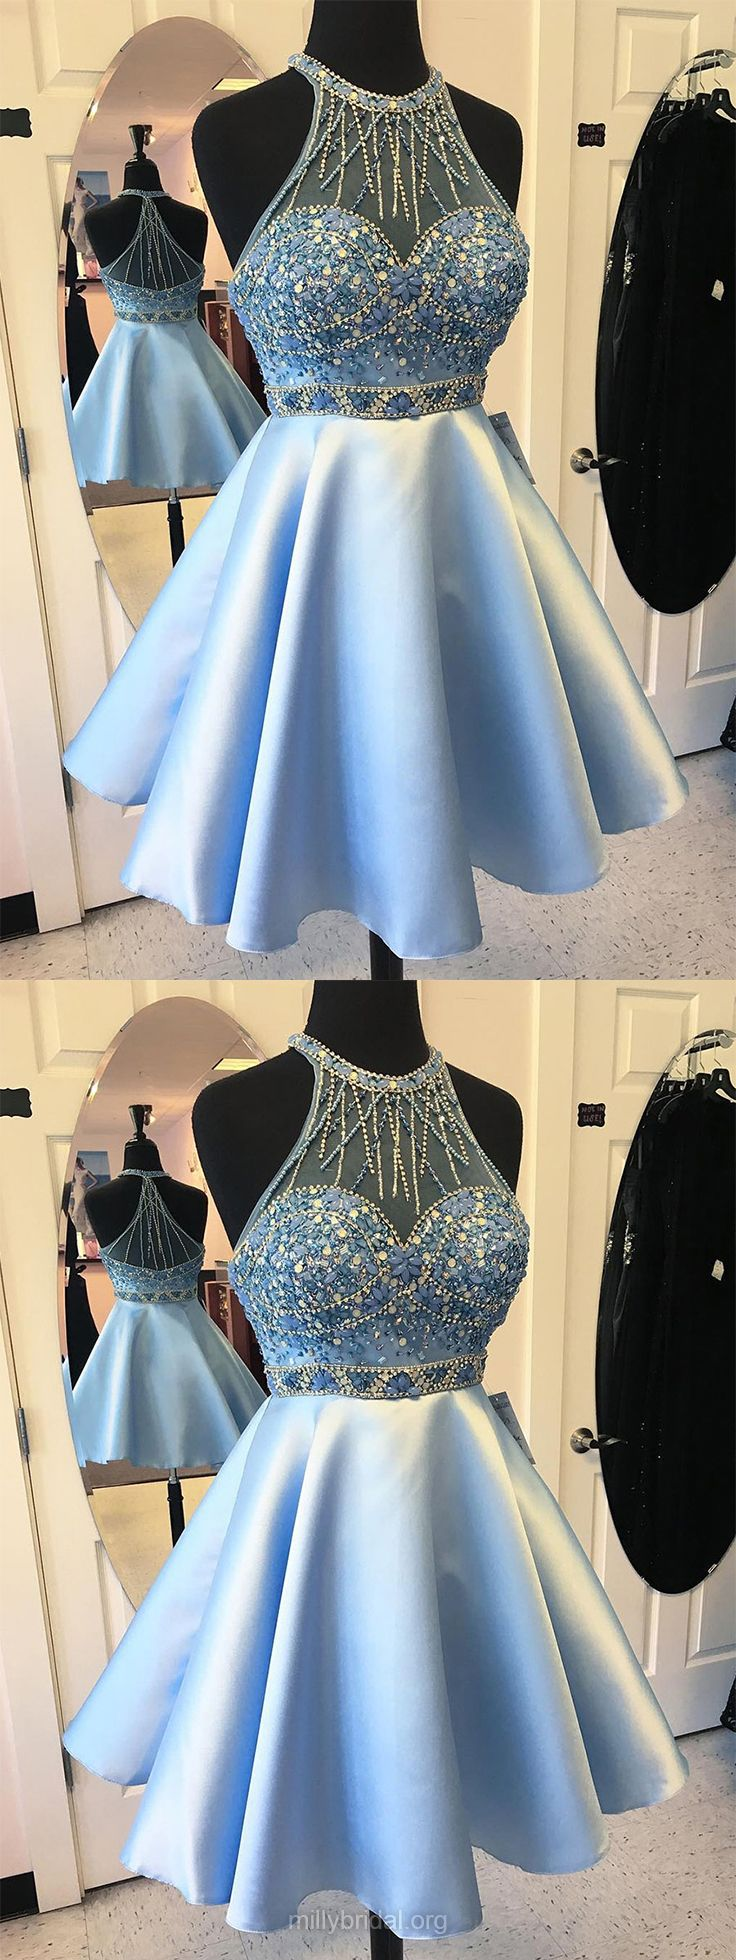 Blue Prom Dresses Short, 2018 Prom Dresses For Teens, A-line Prom Dresses Scoop Neck, Satin Tulle Prom Dresses Beading Modest